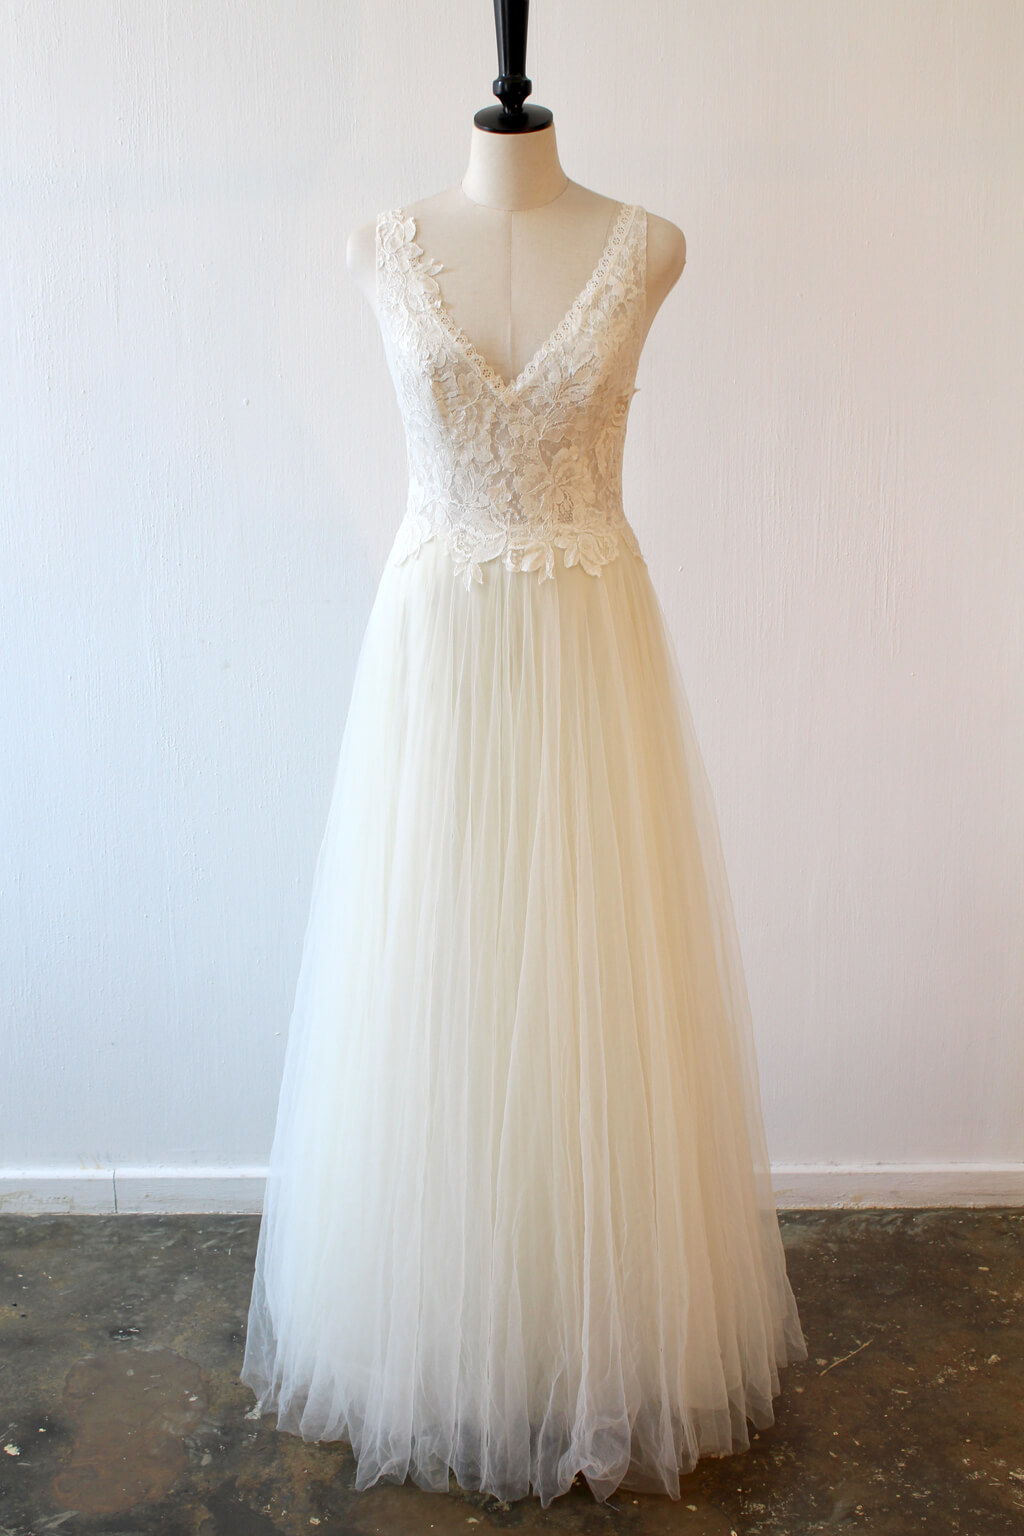 Lunar chantilly lace and tulle wedding dress